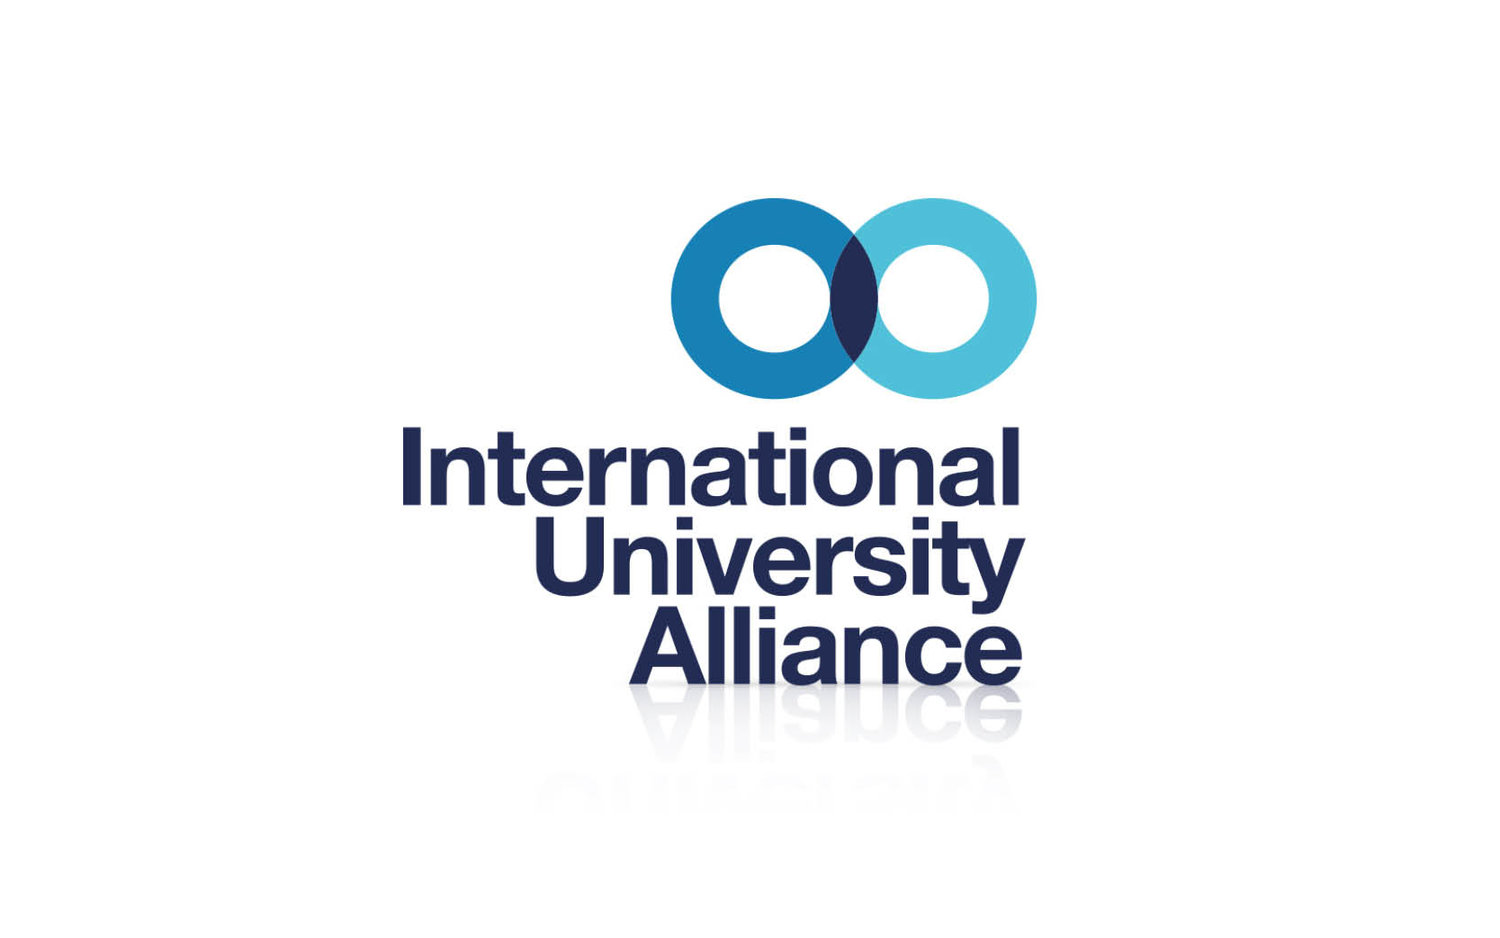 International University Alliance (IUA)